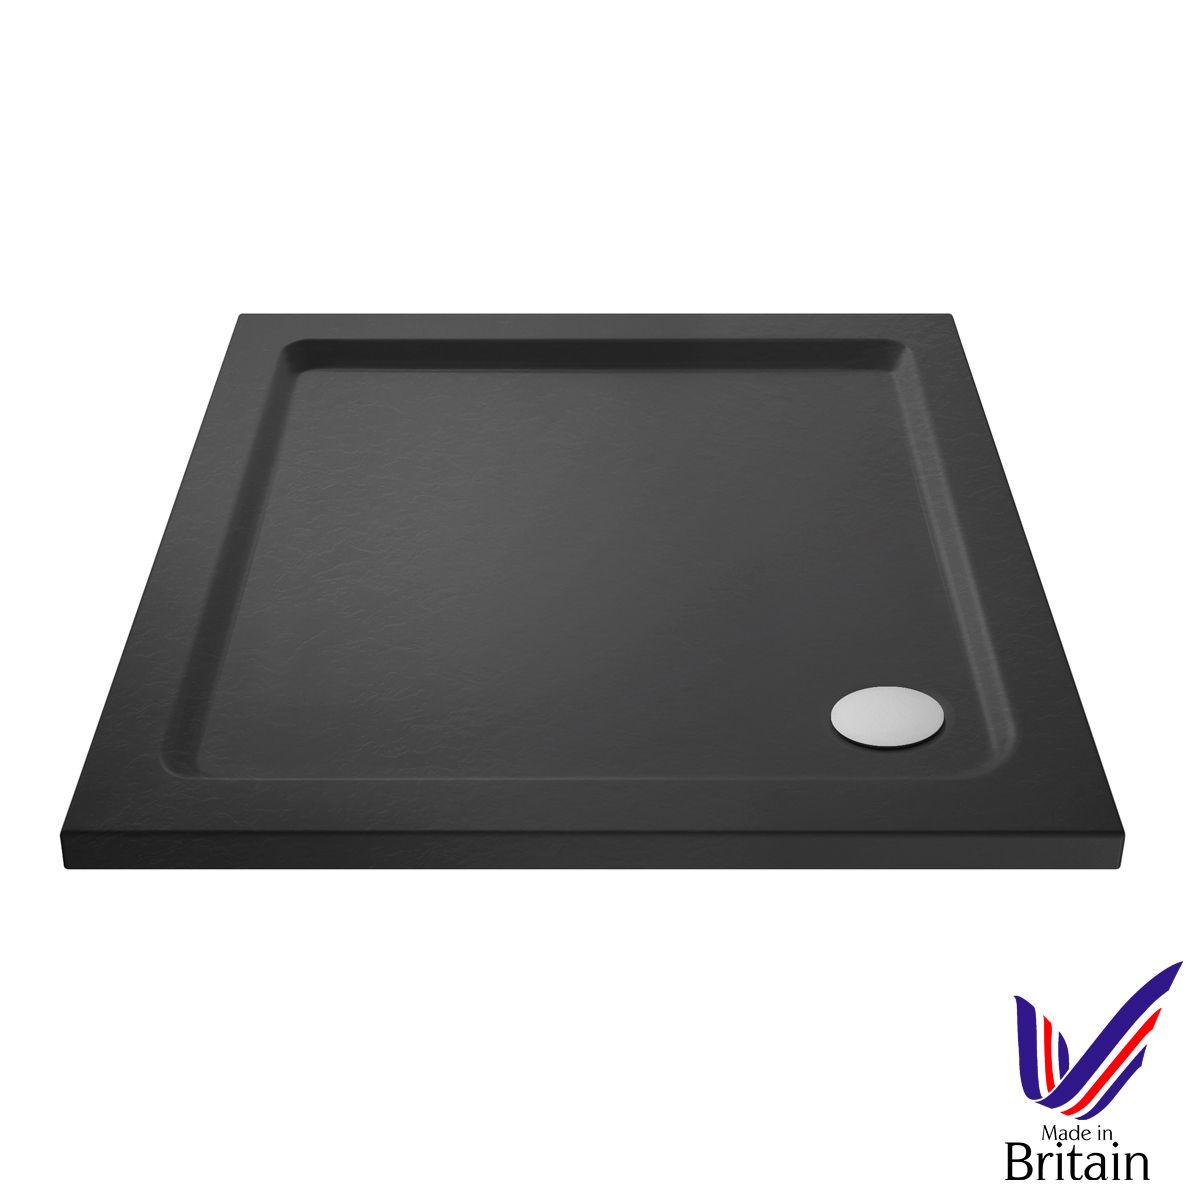 800 x 800 Shower Tray Slate Grey Square Low Profile by Pearlstone